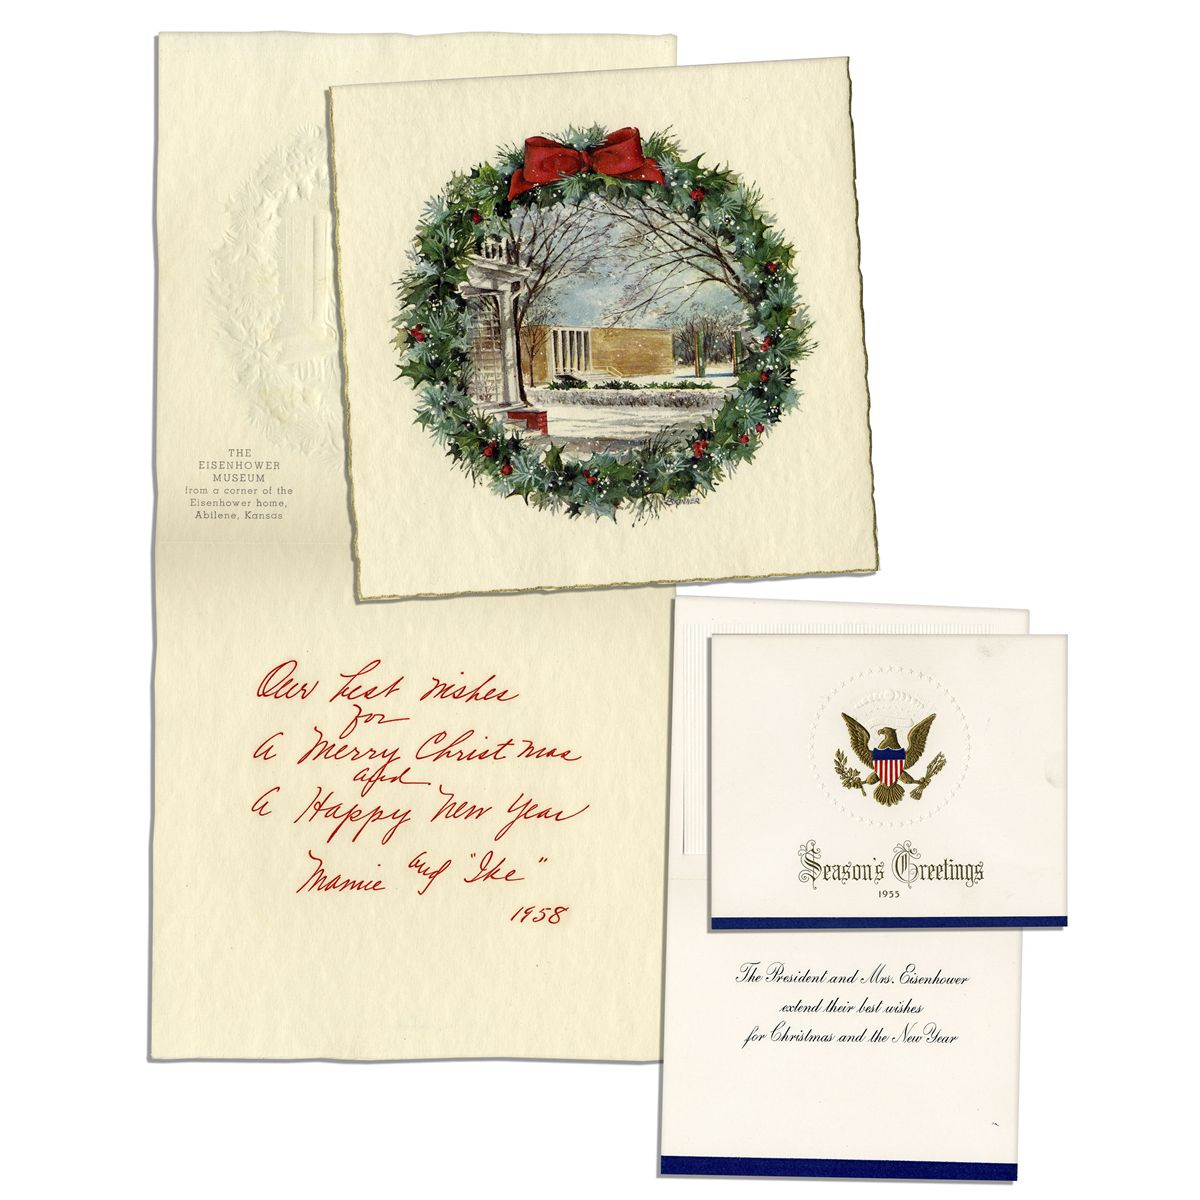 Two Christmas Cards From the Eisenhower White House -- From 1955 & 1958